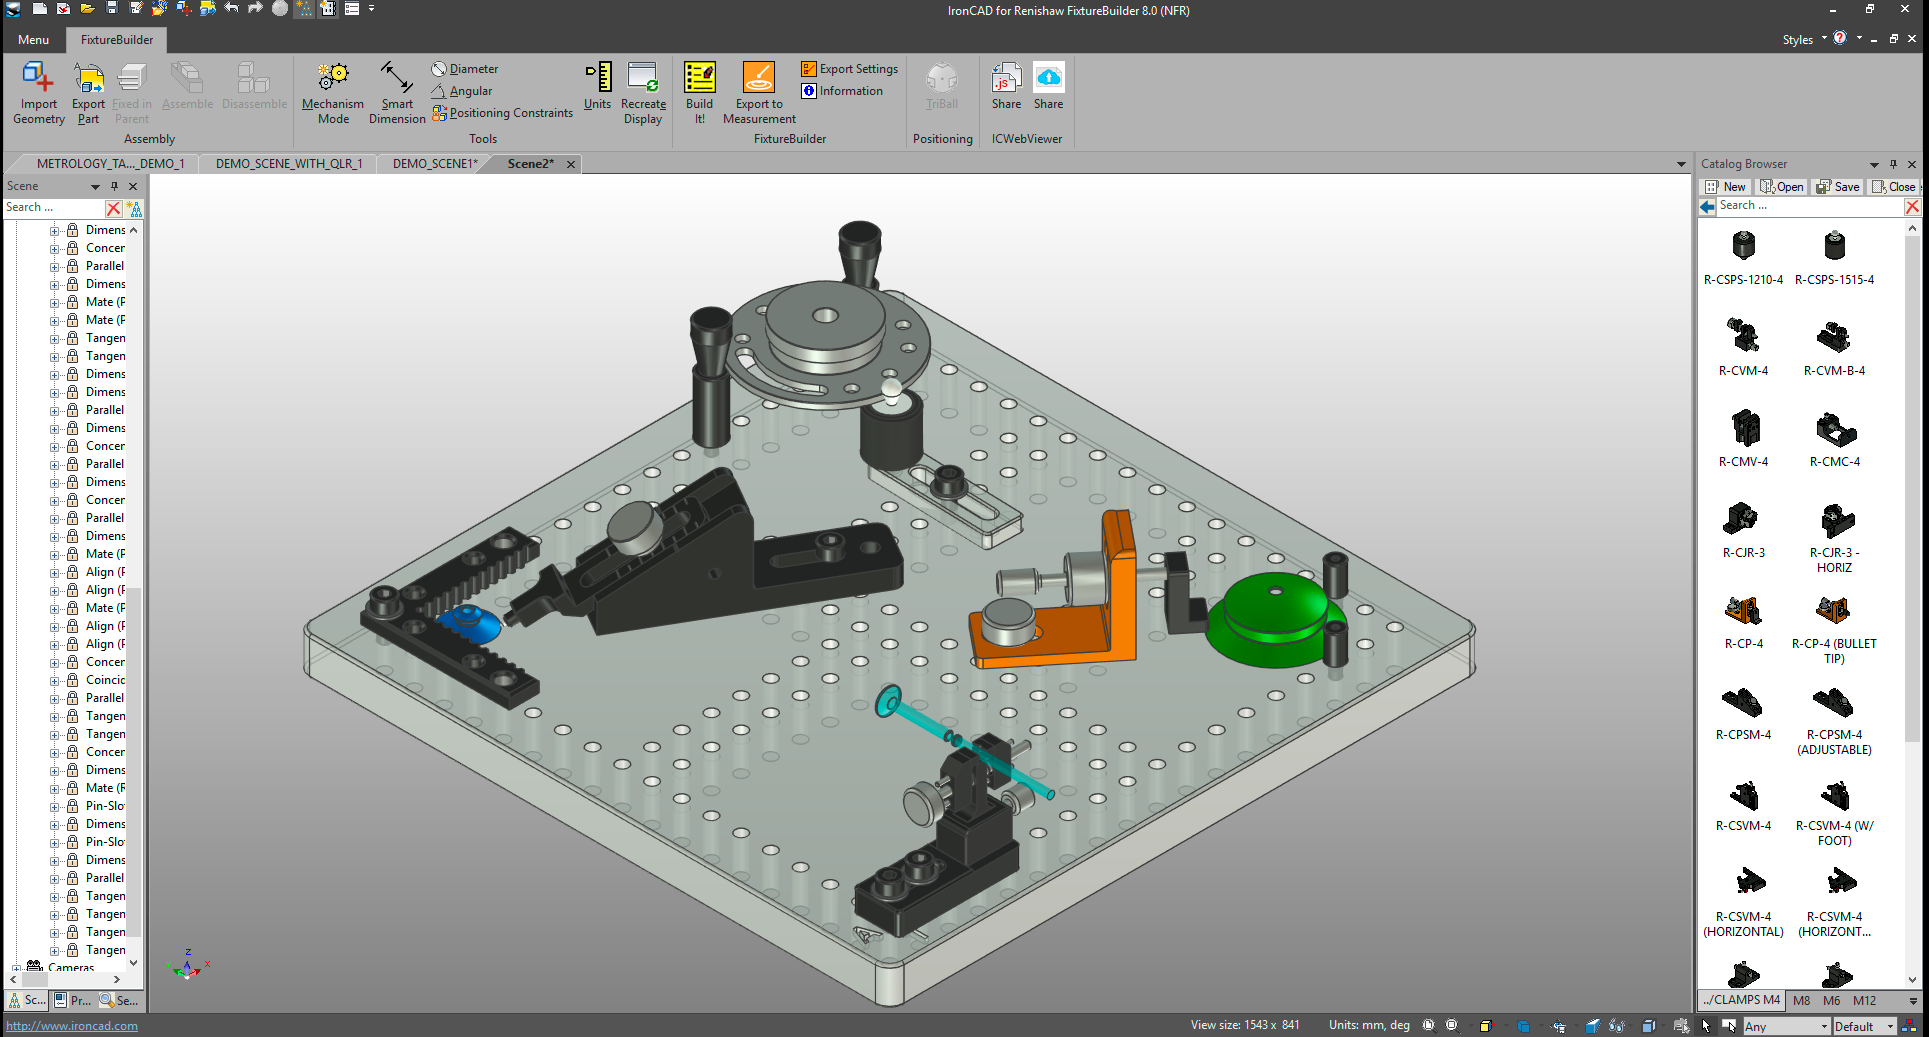 The FixtureBuilder UI. Image via Renishaw.